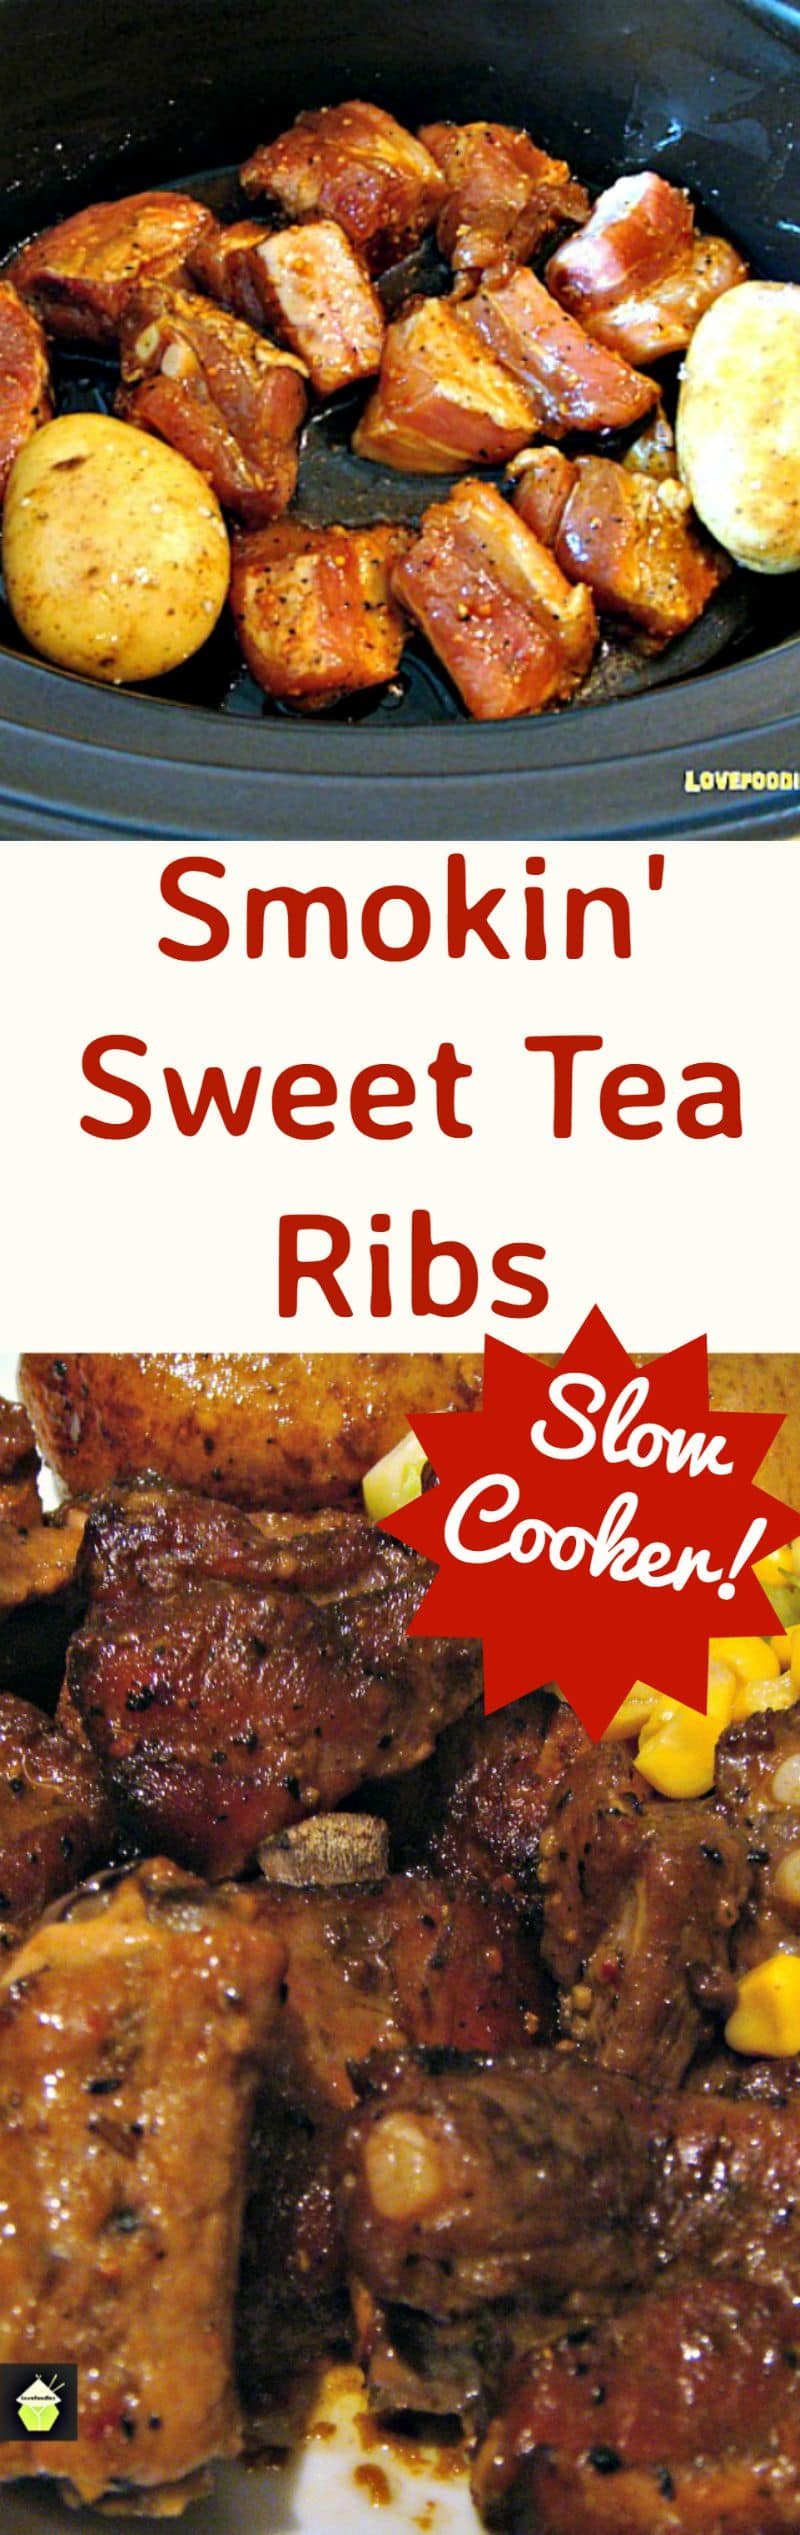 Smokin' Sweet Tea Ribs. Use pork or beef ribs, chops, drumsticks, you choose! Slow Cooker/Crock pot! You can also use this wonderful marinade for grilling or oven! Also makes for great party food!